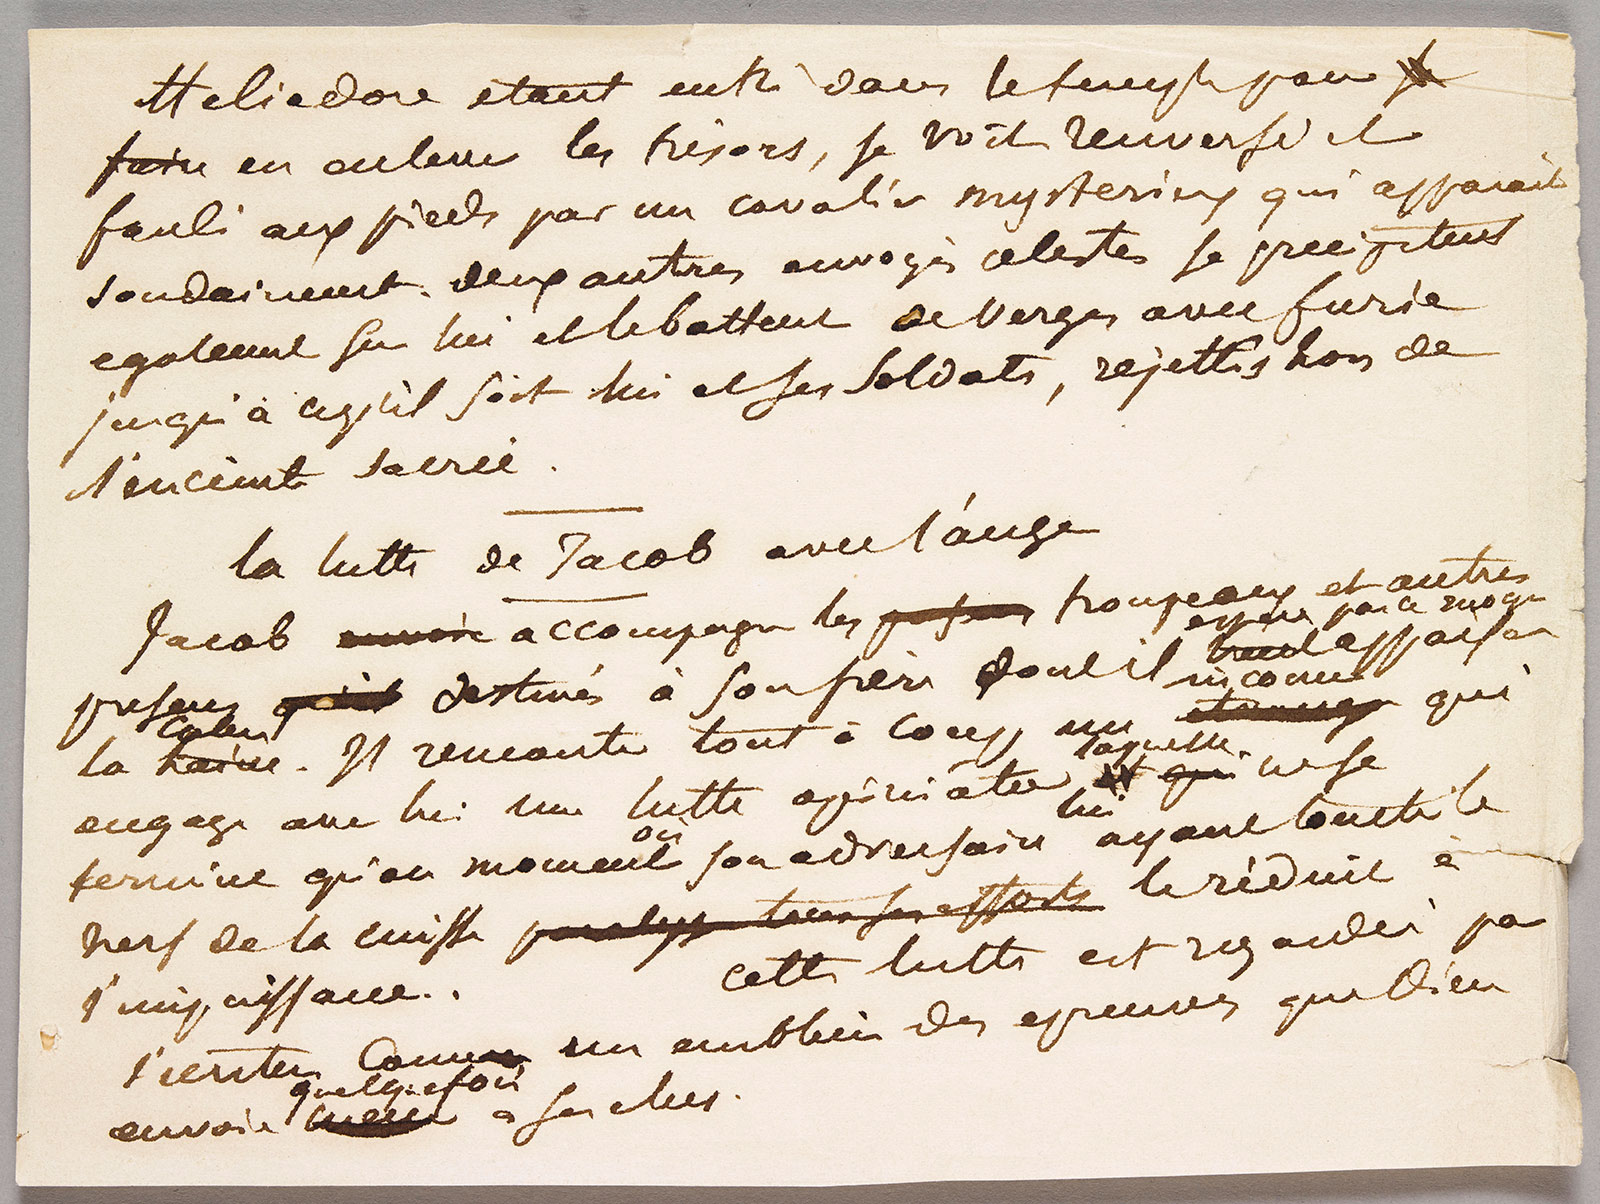 Ensemble de lettres autographes, de notes d'Eugène Delacroix et de documents d'archives